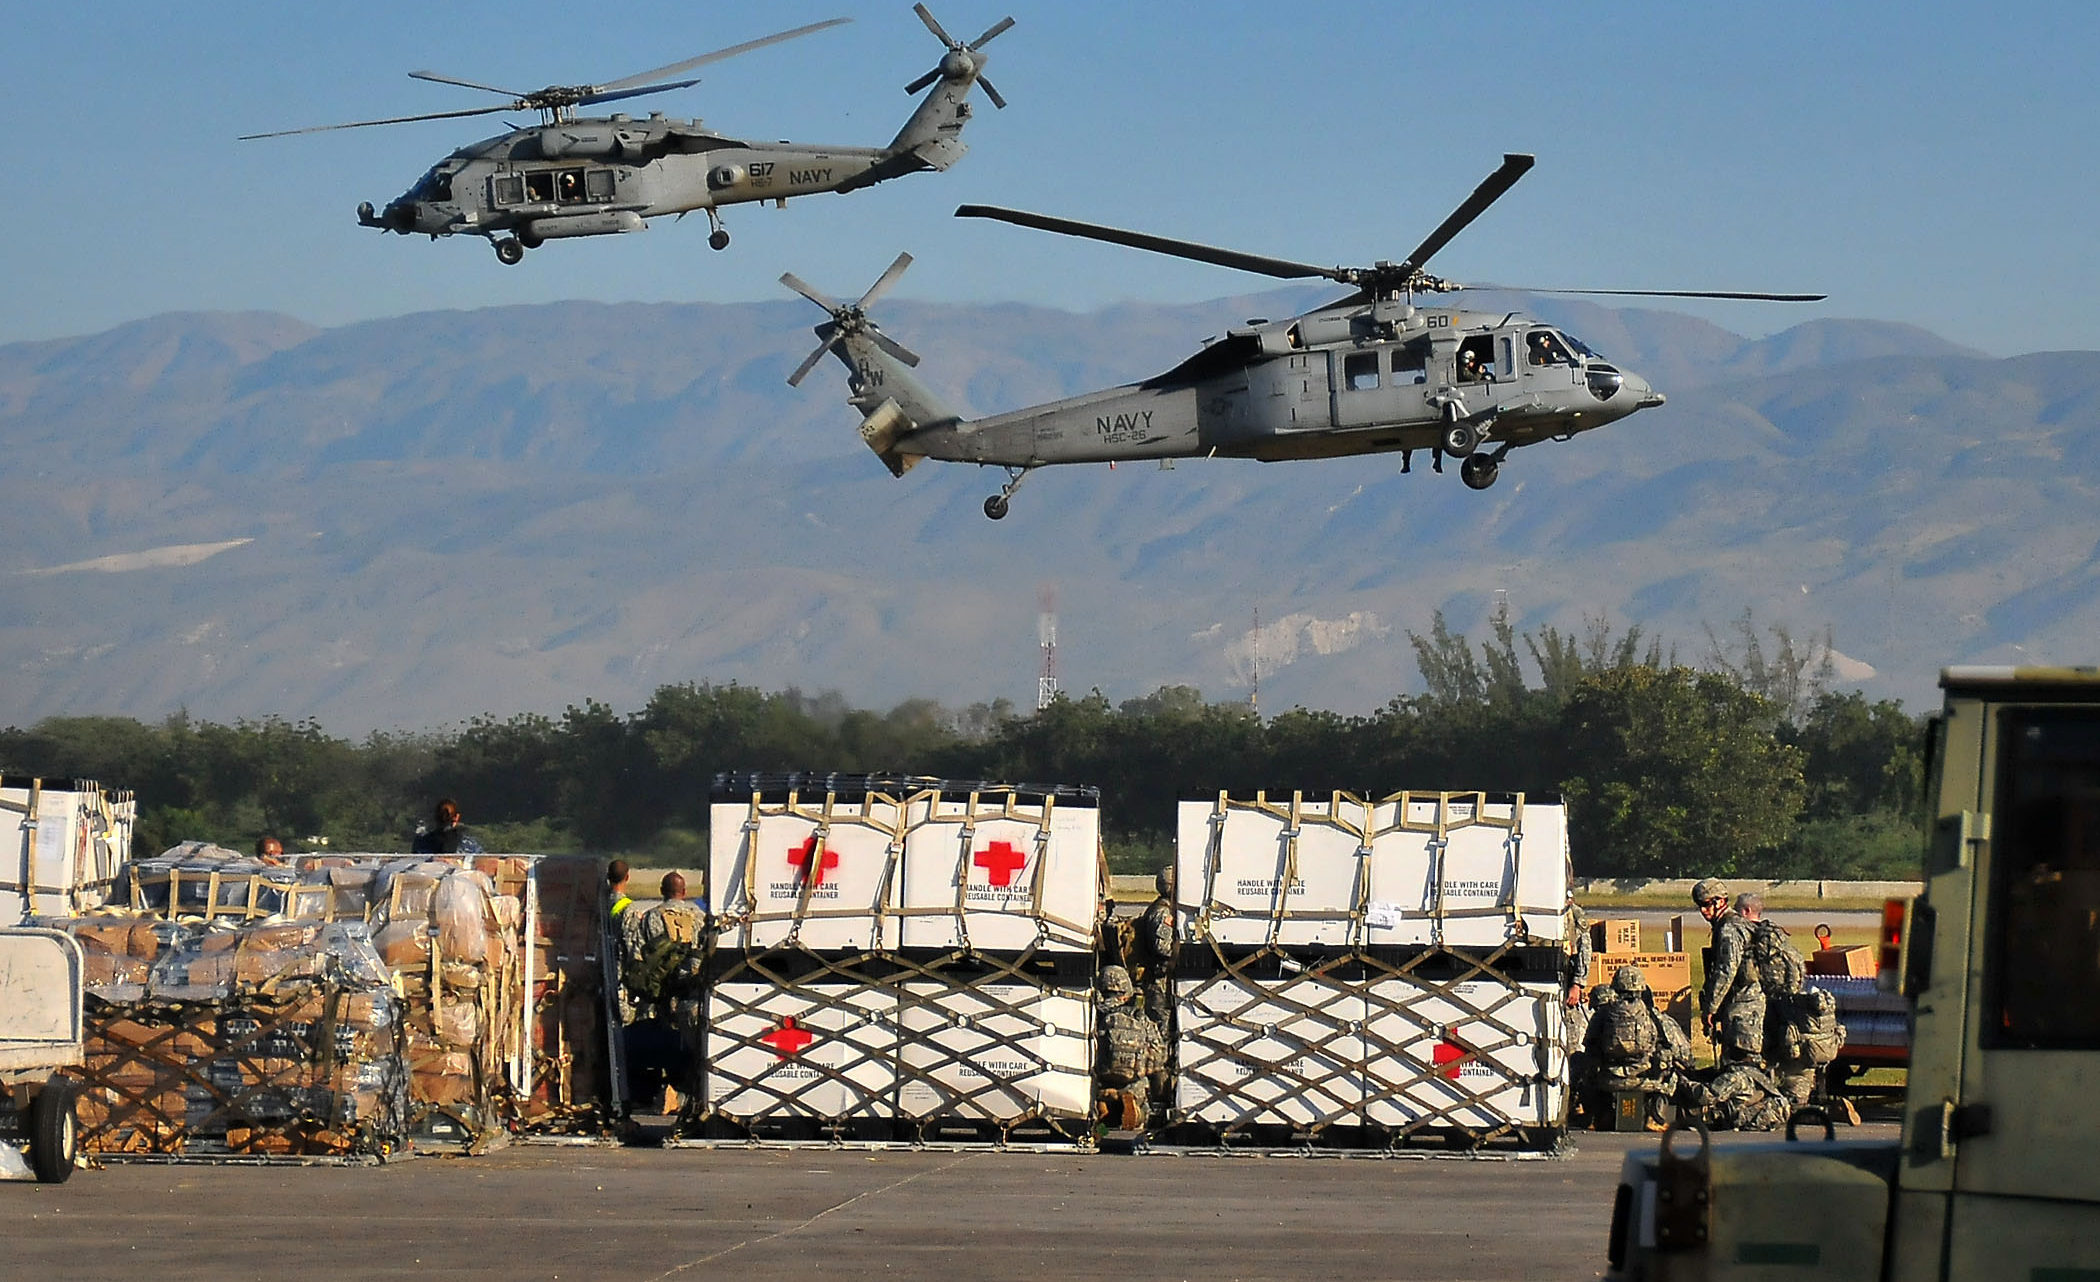 PORT-AU-PRINCE, Haiti  (Jan. 18, 2010) U.S. Navy SH-60F Sea Hawk helicopters from the Nimitz-class aircraft carrier USS Carl Vinson (CVN 70) transport water and supplies from the airport to areas around Port-au-Prince. Carl Vinson and Carrier Air Wing (CVW) 17 are conducting humanitarian and disaster relief operations as part of Operation Unified Response after a 7.0 magnitude earthquake caused severe damage near Port-au-Prince on Jan. 12, 2010. (U.S. Navy photo by Mass Communication Specialist 2nd Class Daniel Barker/Released)